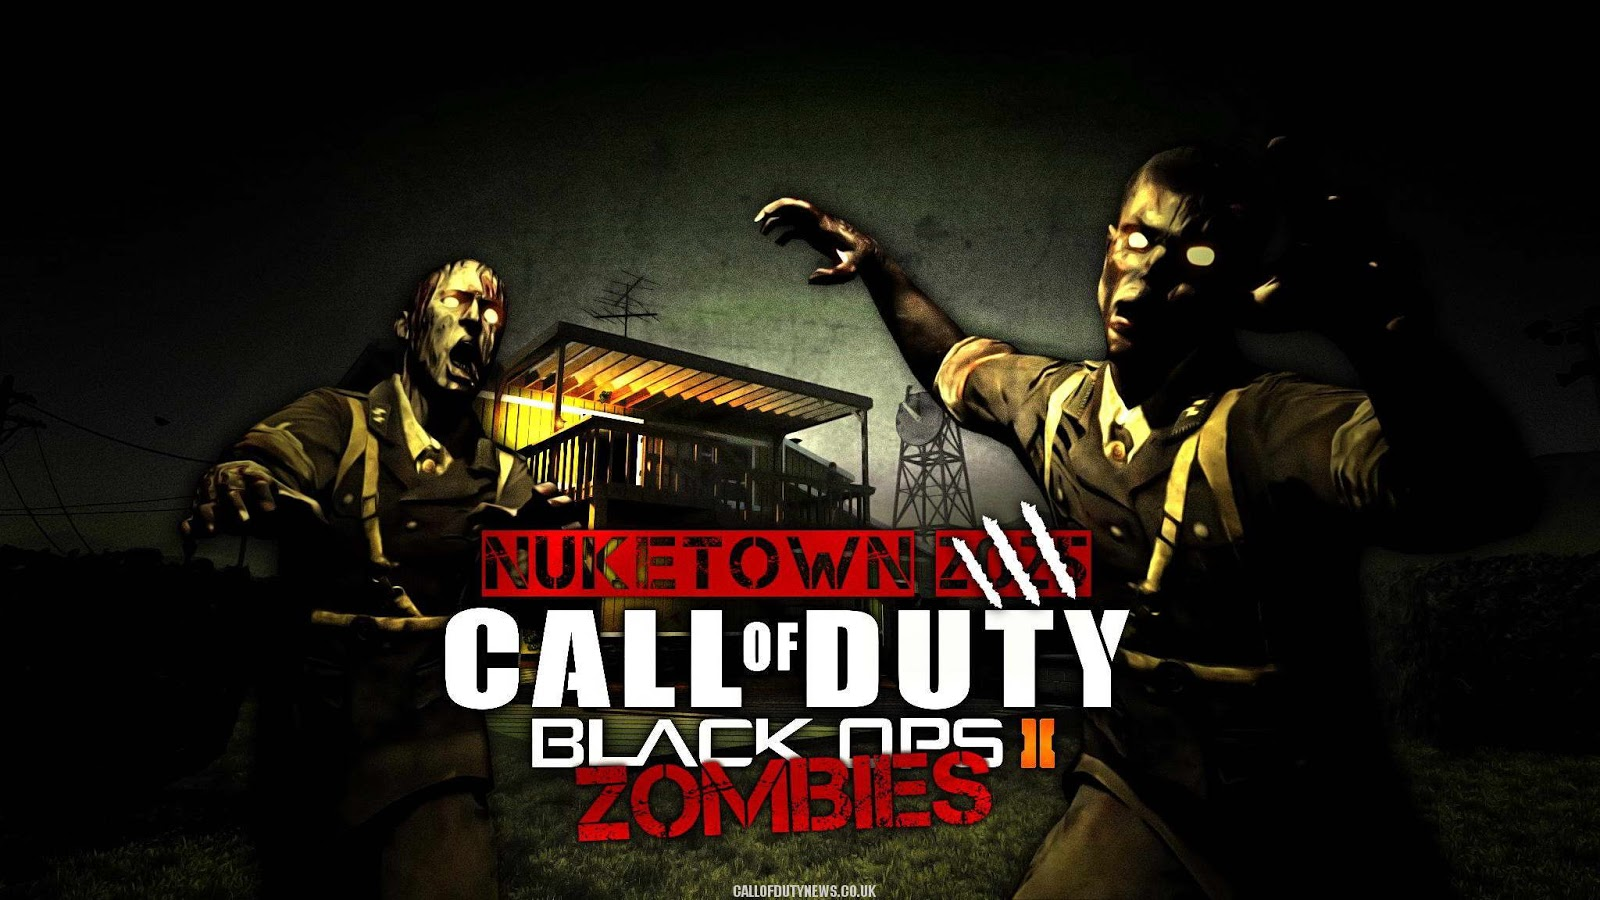 Anband Arts Call Of Duty Black Ops Zombies Wallpapers